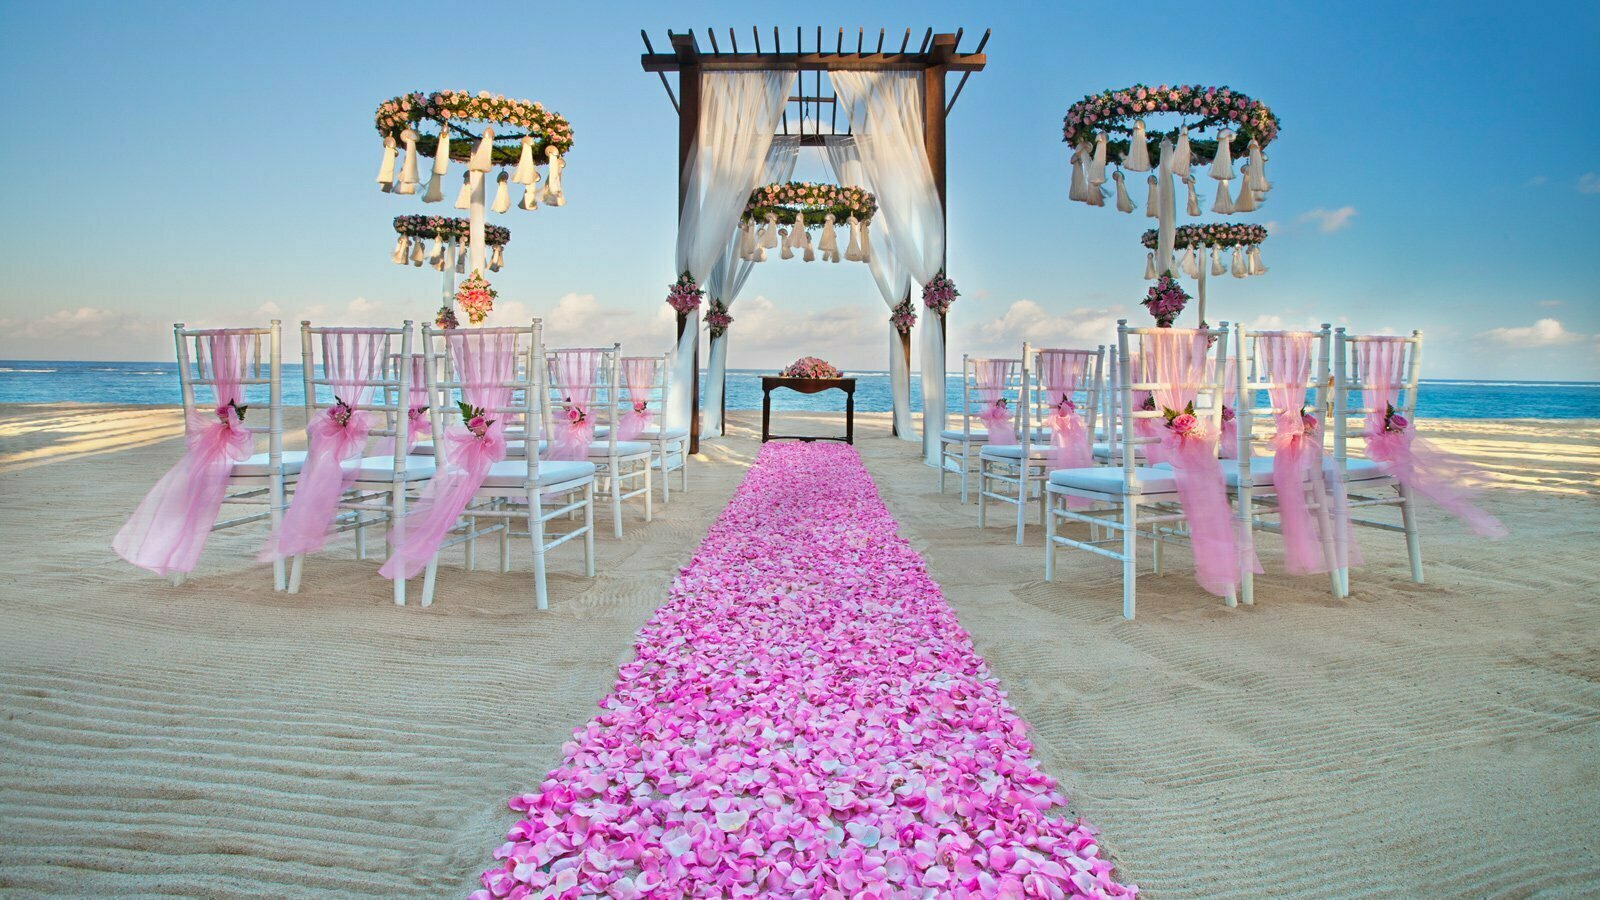 Destination wedding outside india plan with wedabout for Plan a destination wedding